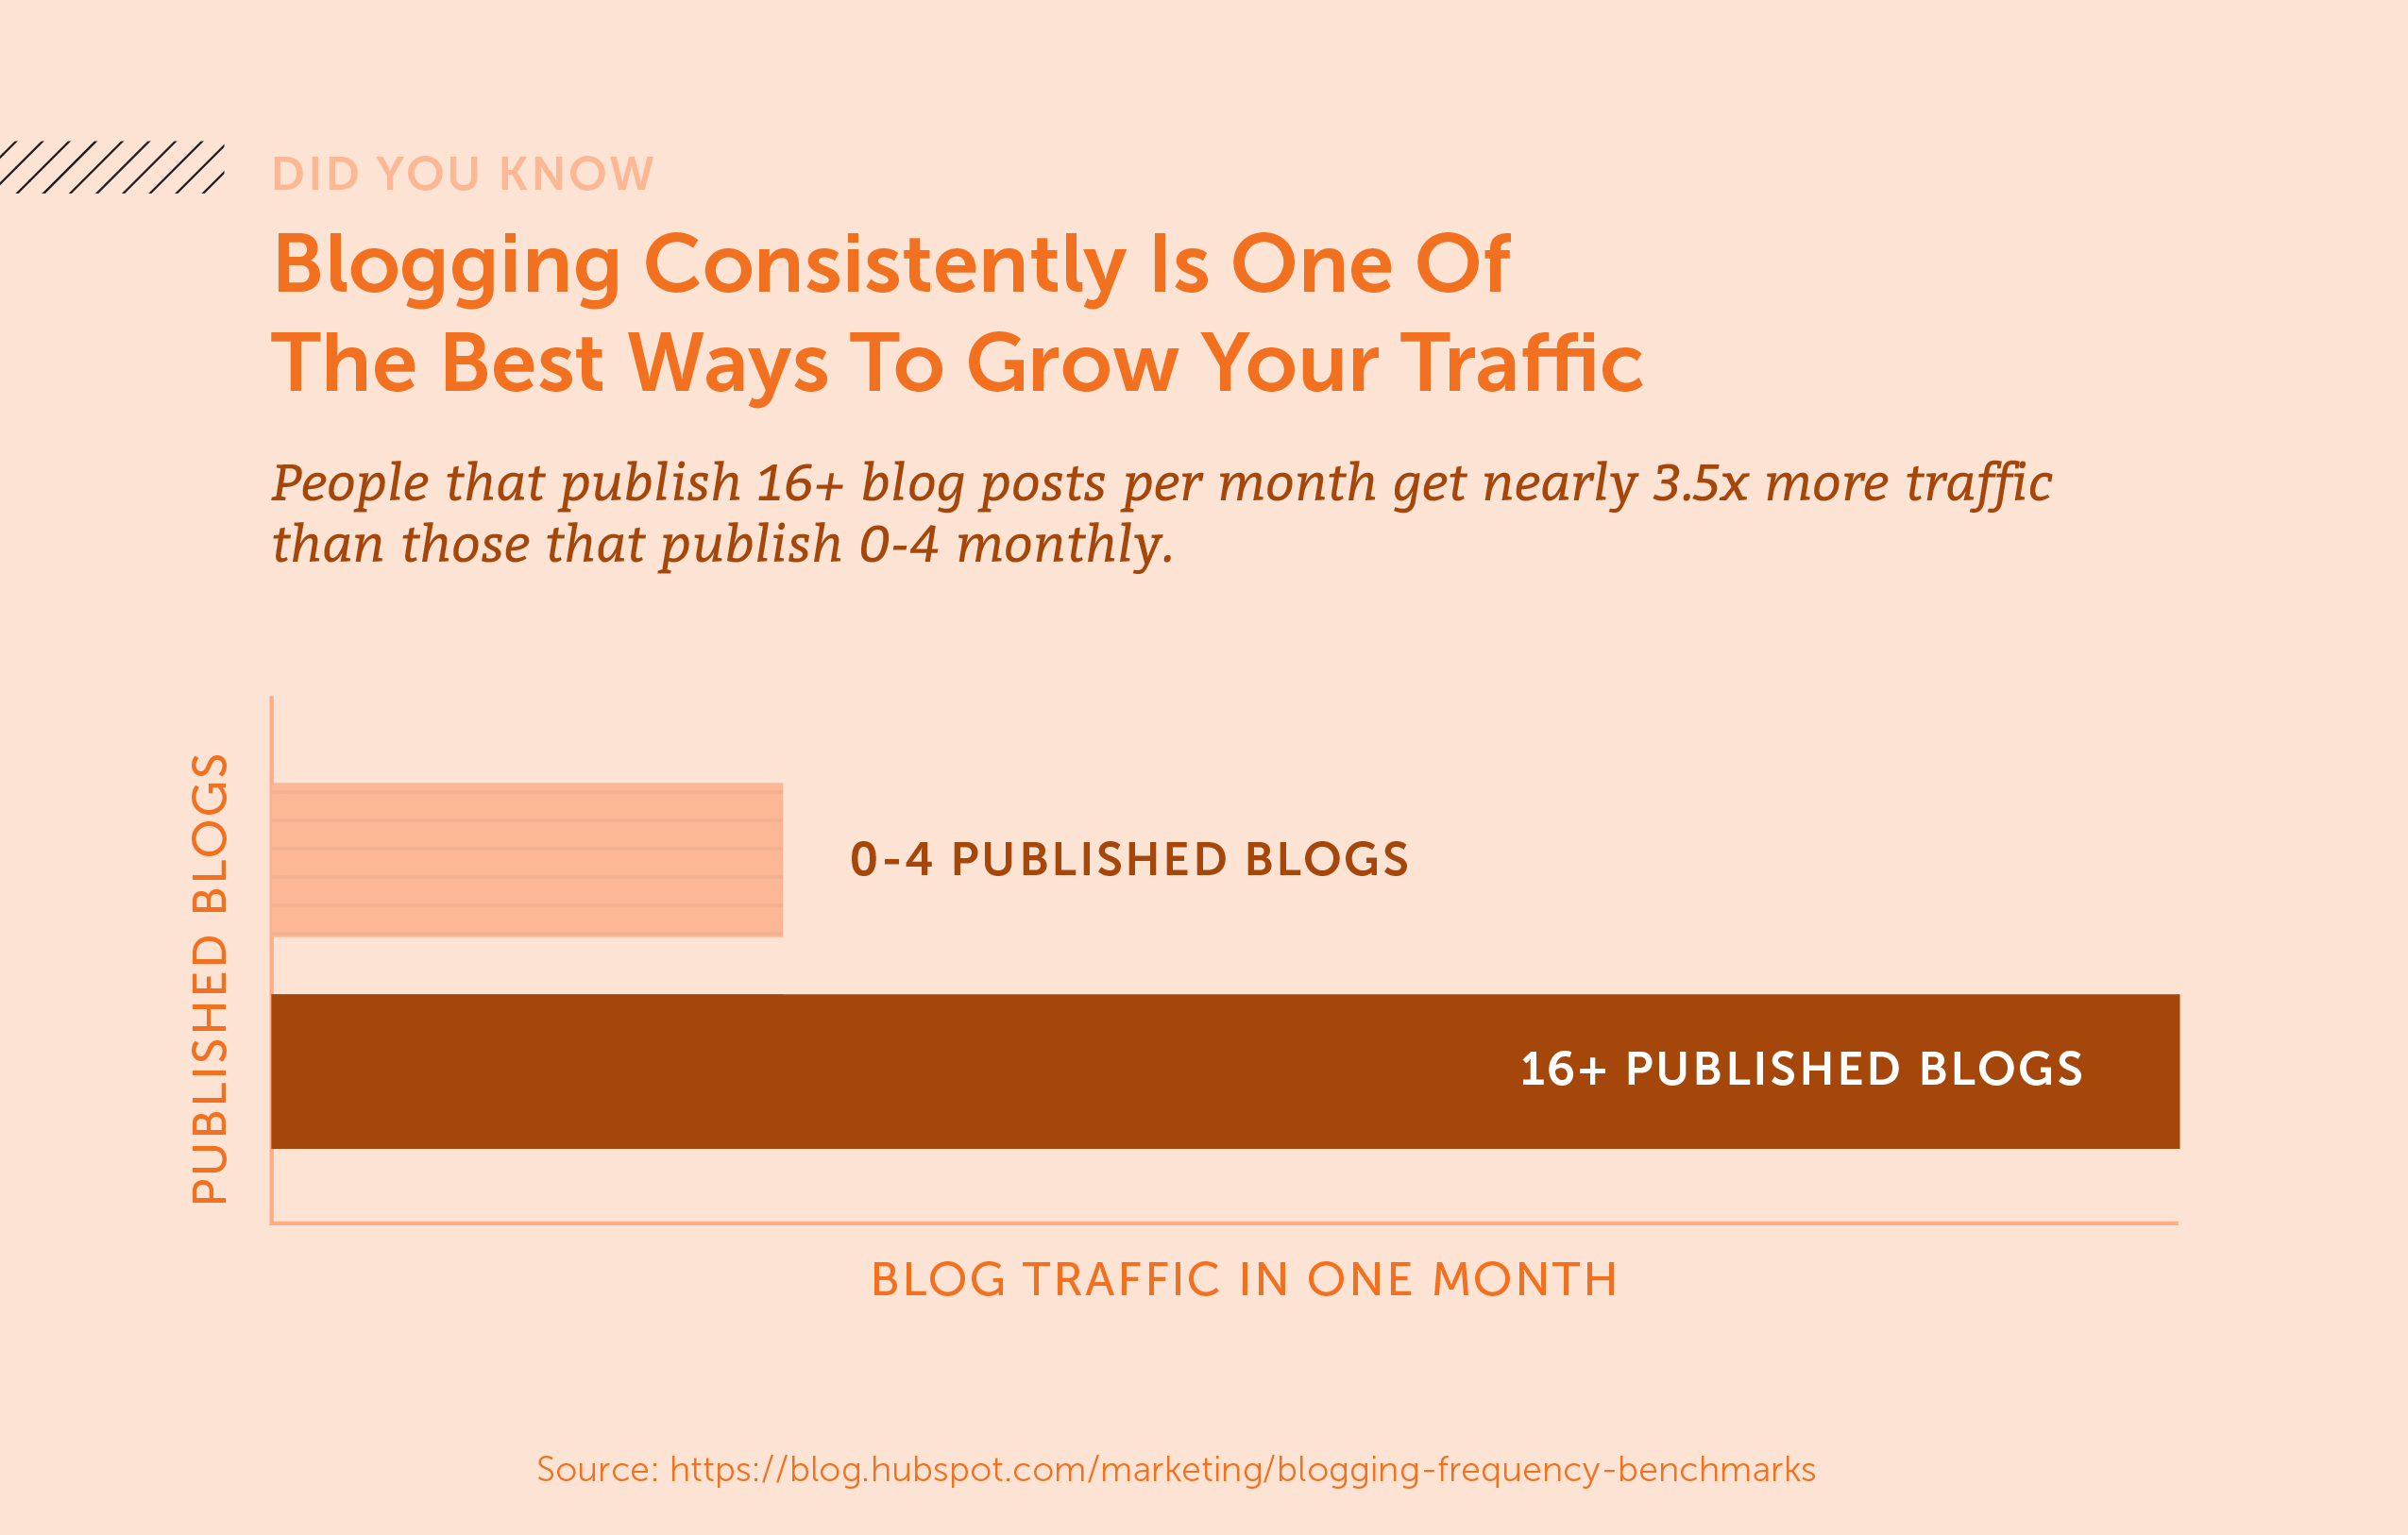 Did you know that bloggin consistently is one of the best ways to grow your traffic. People that publish 16+ blogs per month get nearly 3.5 more traffic than those who publish 0-4 monthly